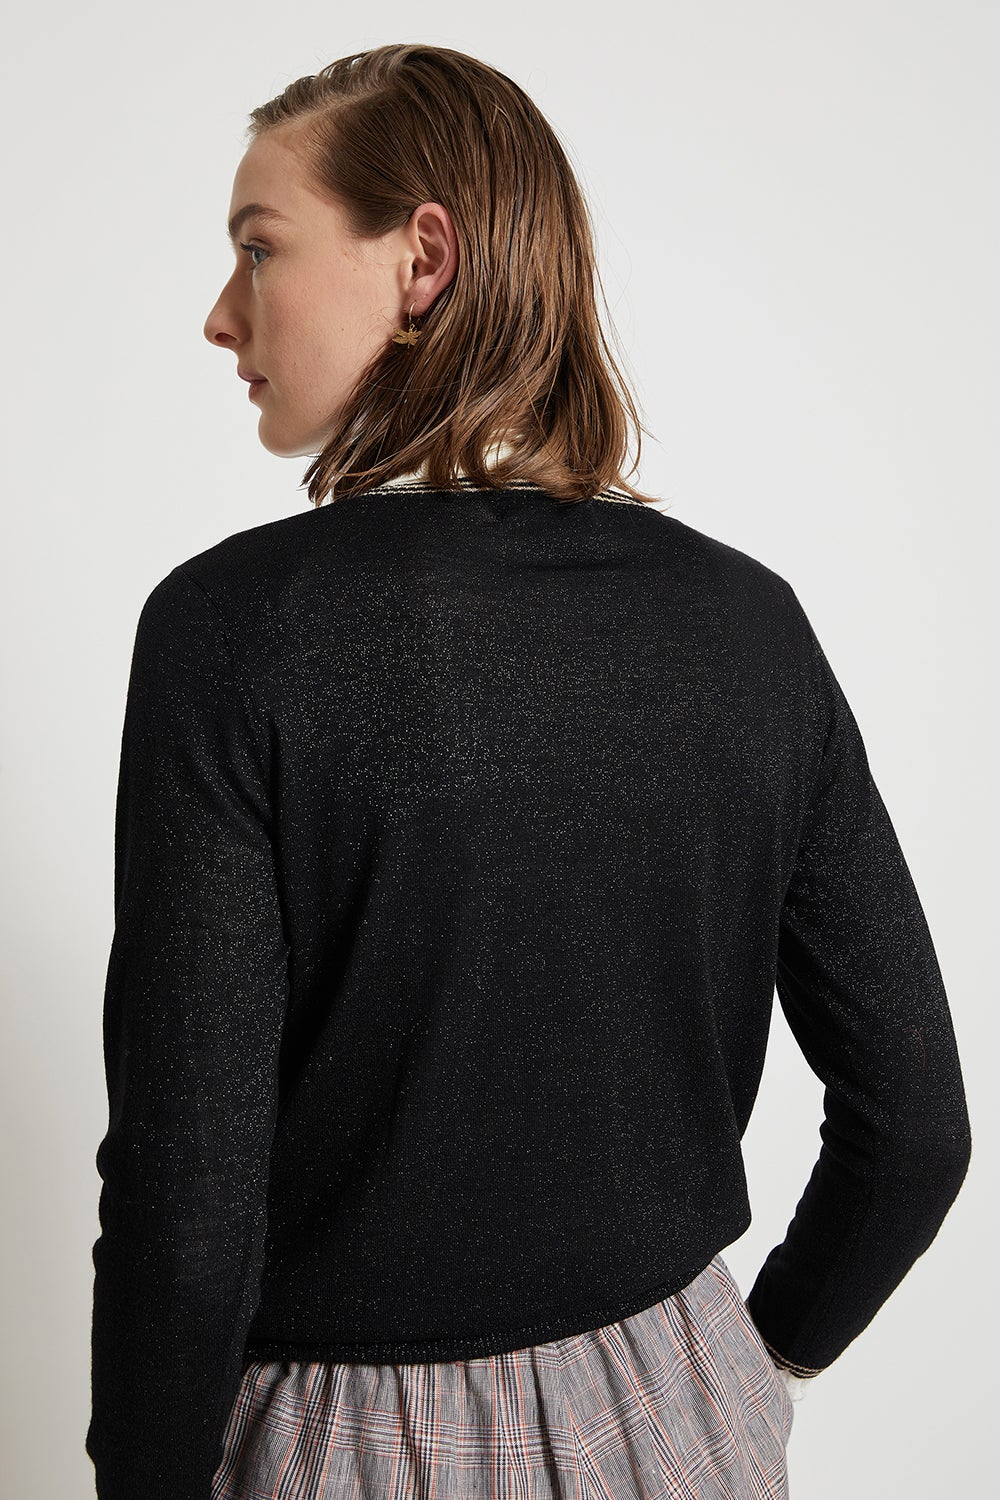 Apollo Knit Sweater